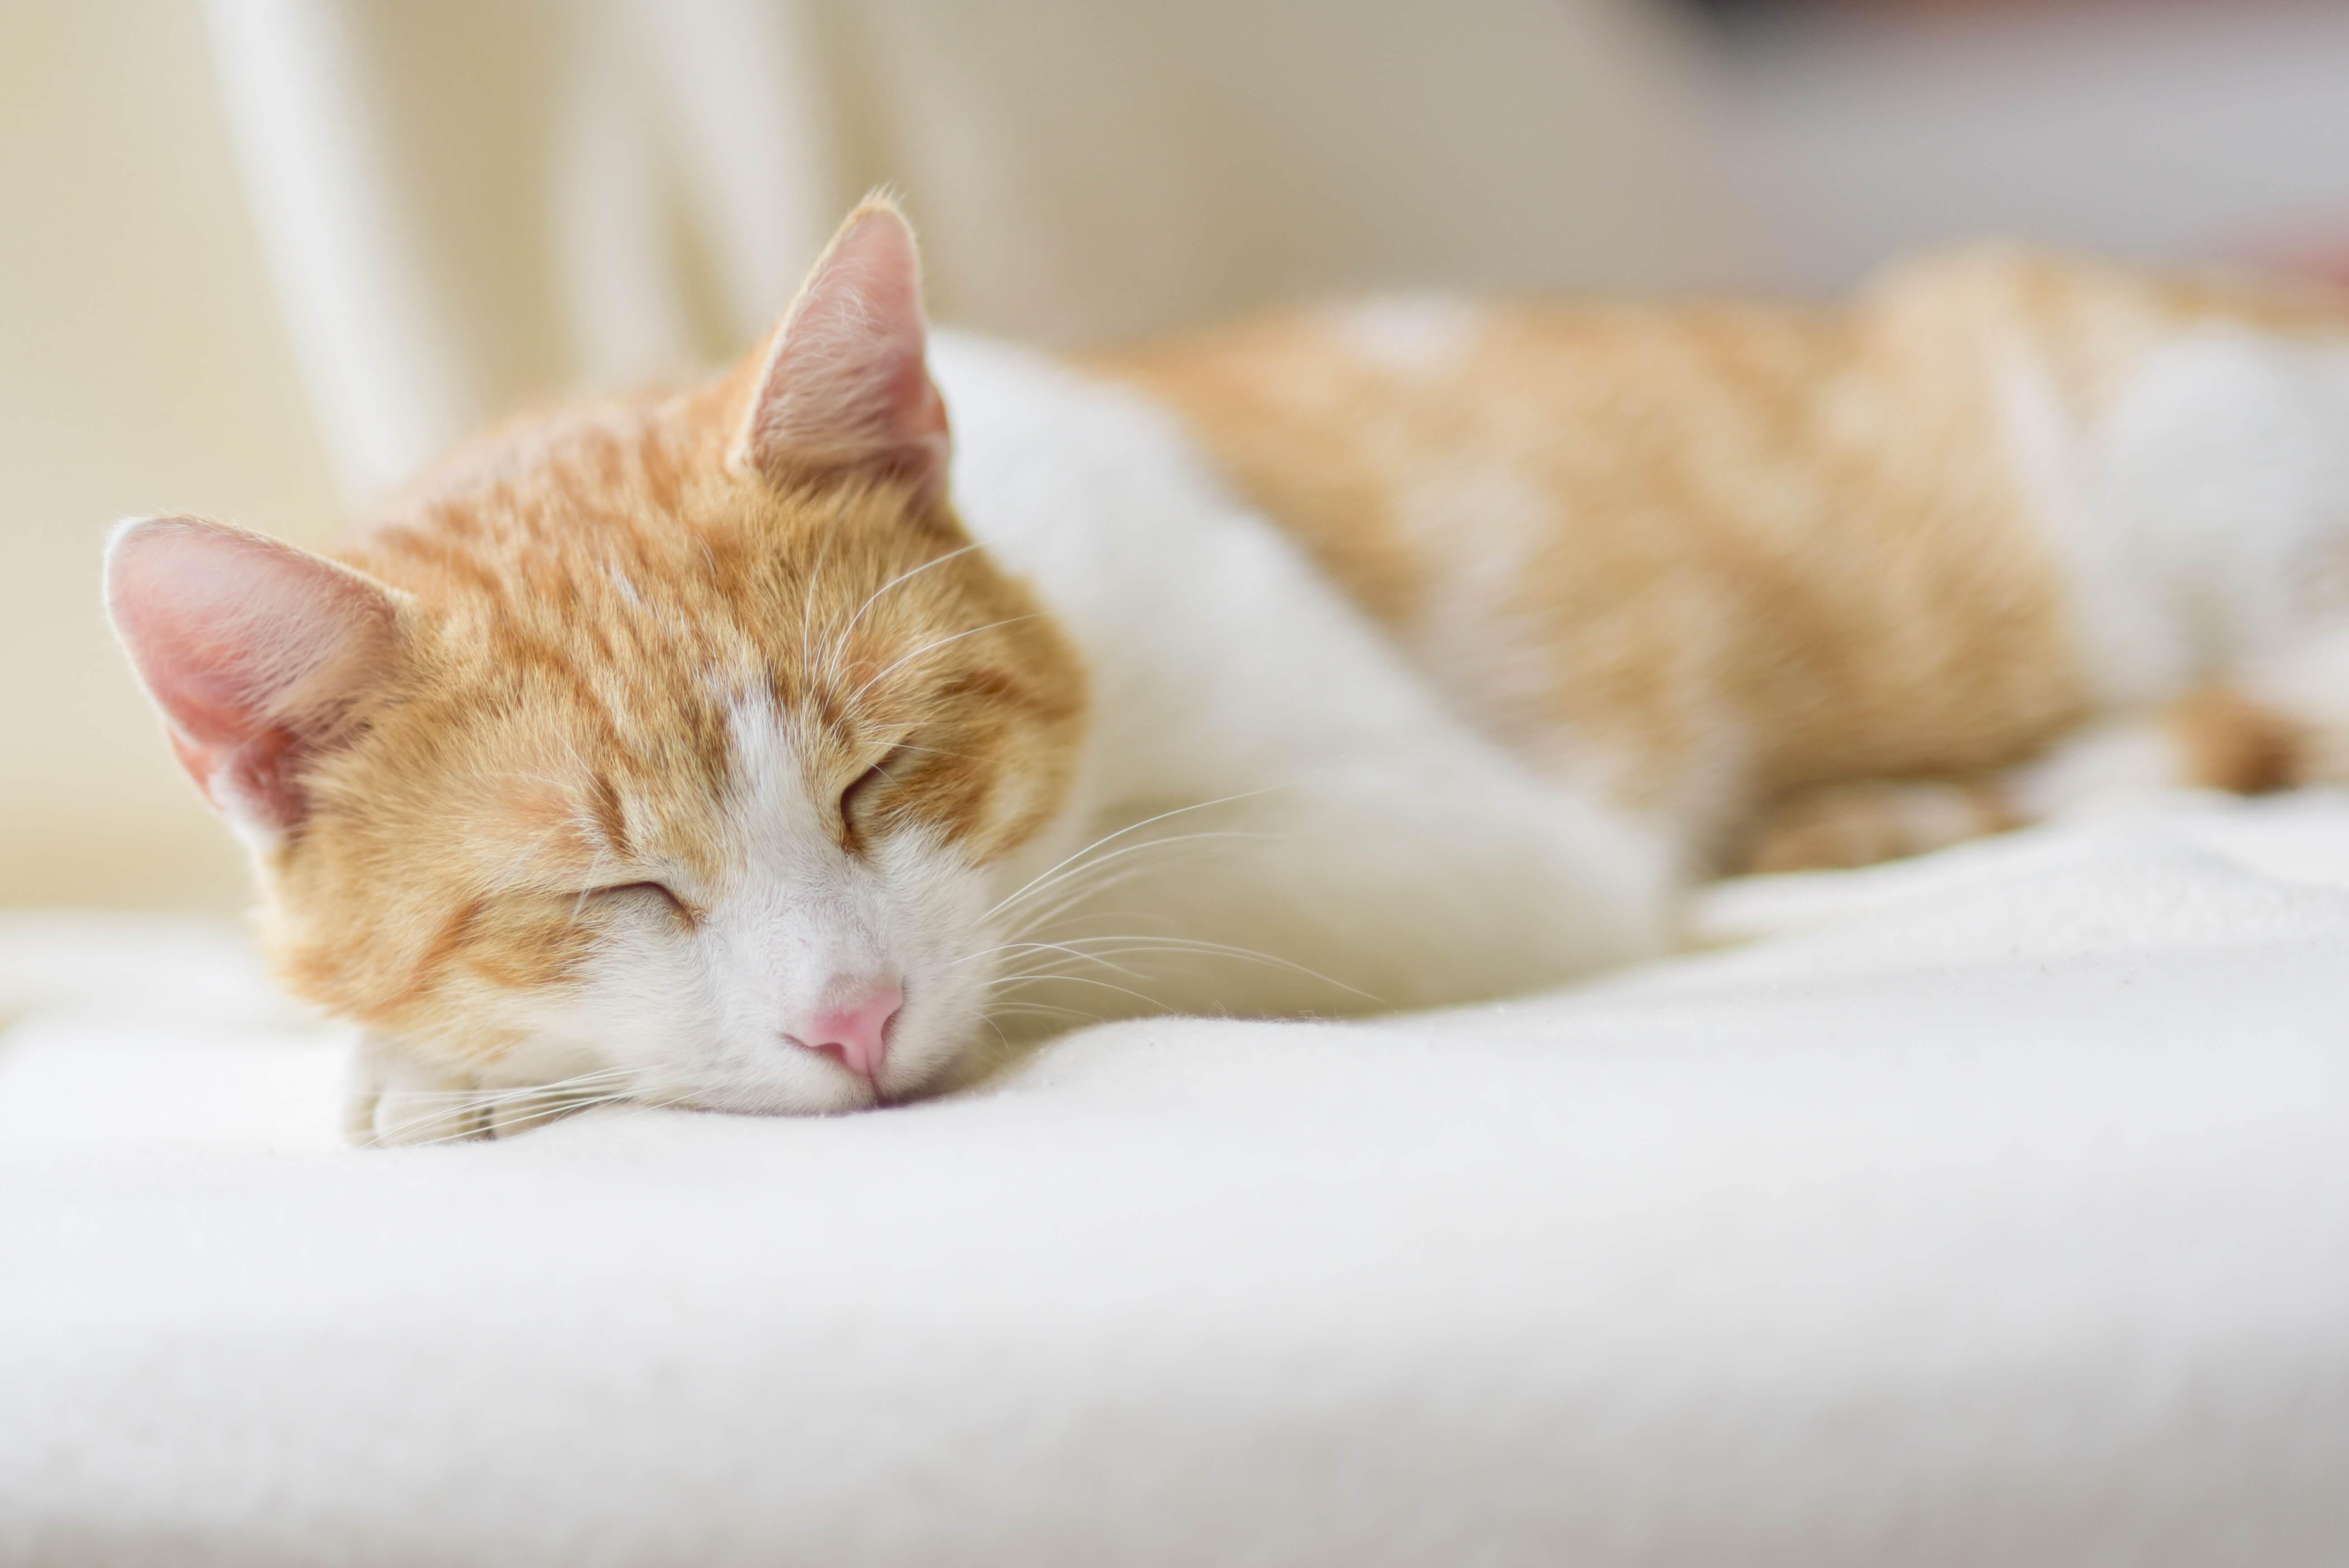 What Can Help A Cat When Sneezing From A Virus